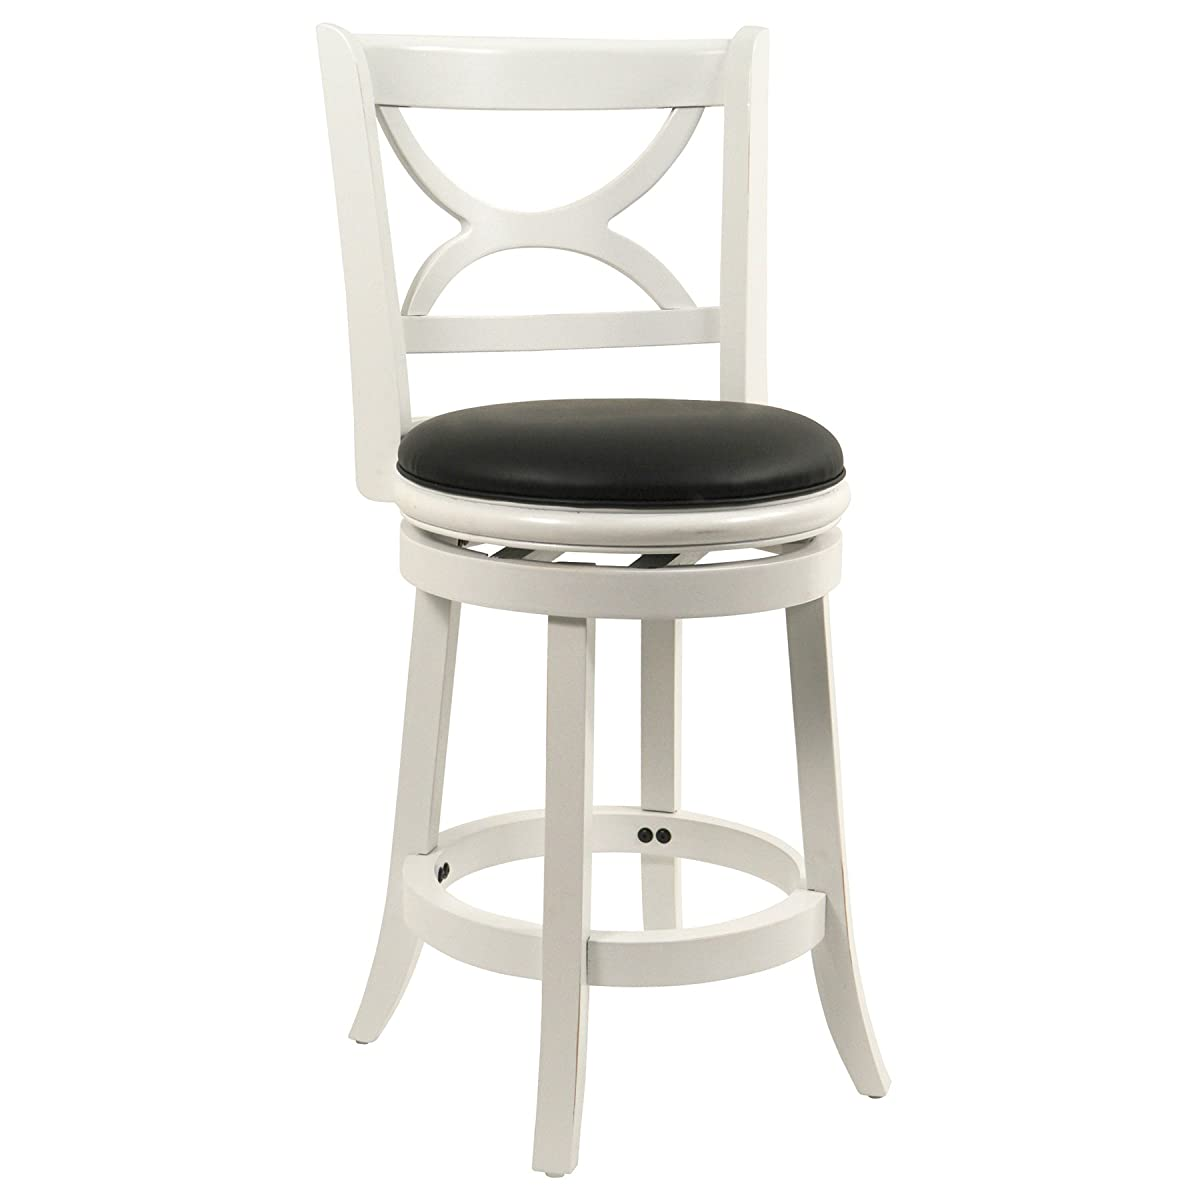 Boraam 43724 Florence Counter Height Swivel Stool, 24-Inch, Distressed White